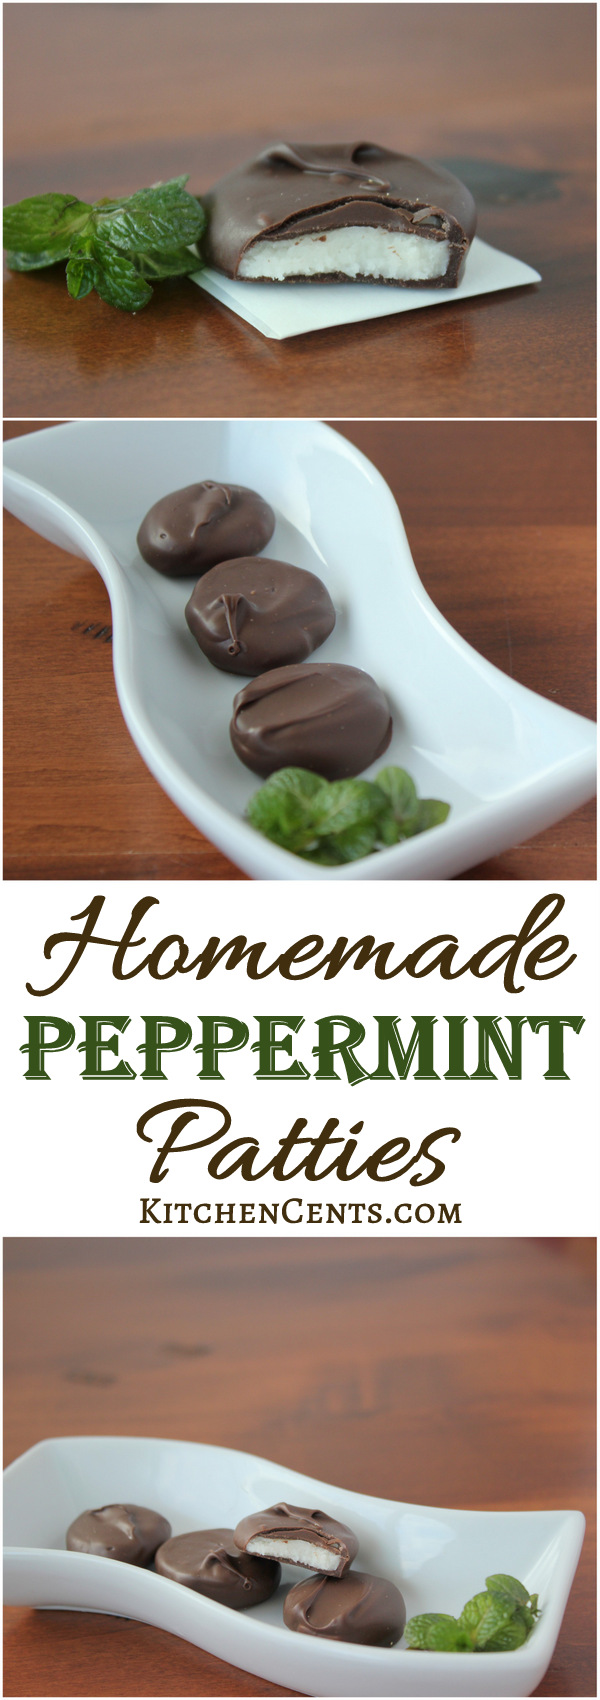 Homemade Peppermint Patties | KitchenCents.com